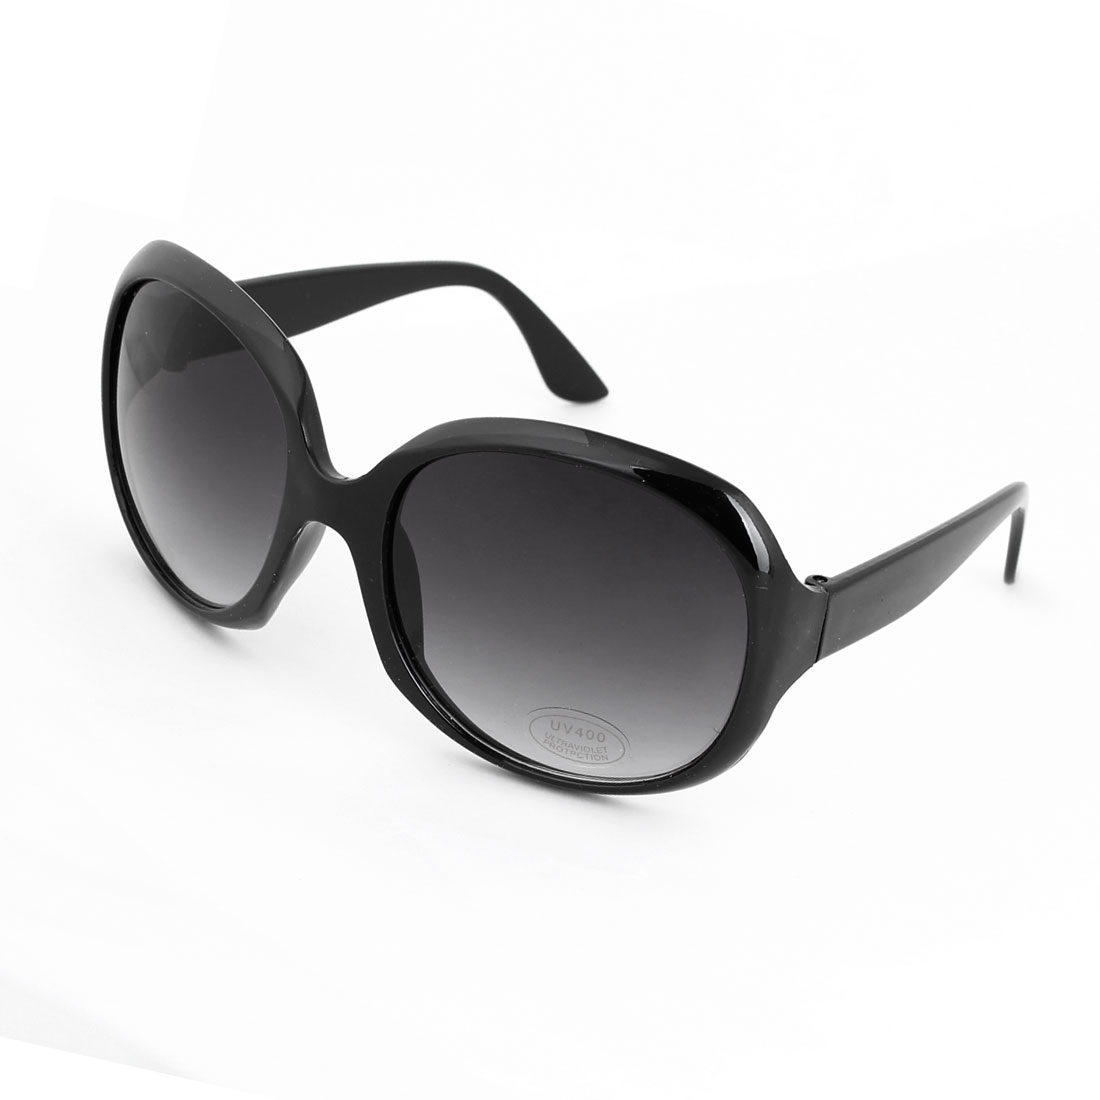 Unisex Black Plastic Full Frame Single Bridge Oversized Colored Lens Sunglasses